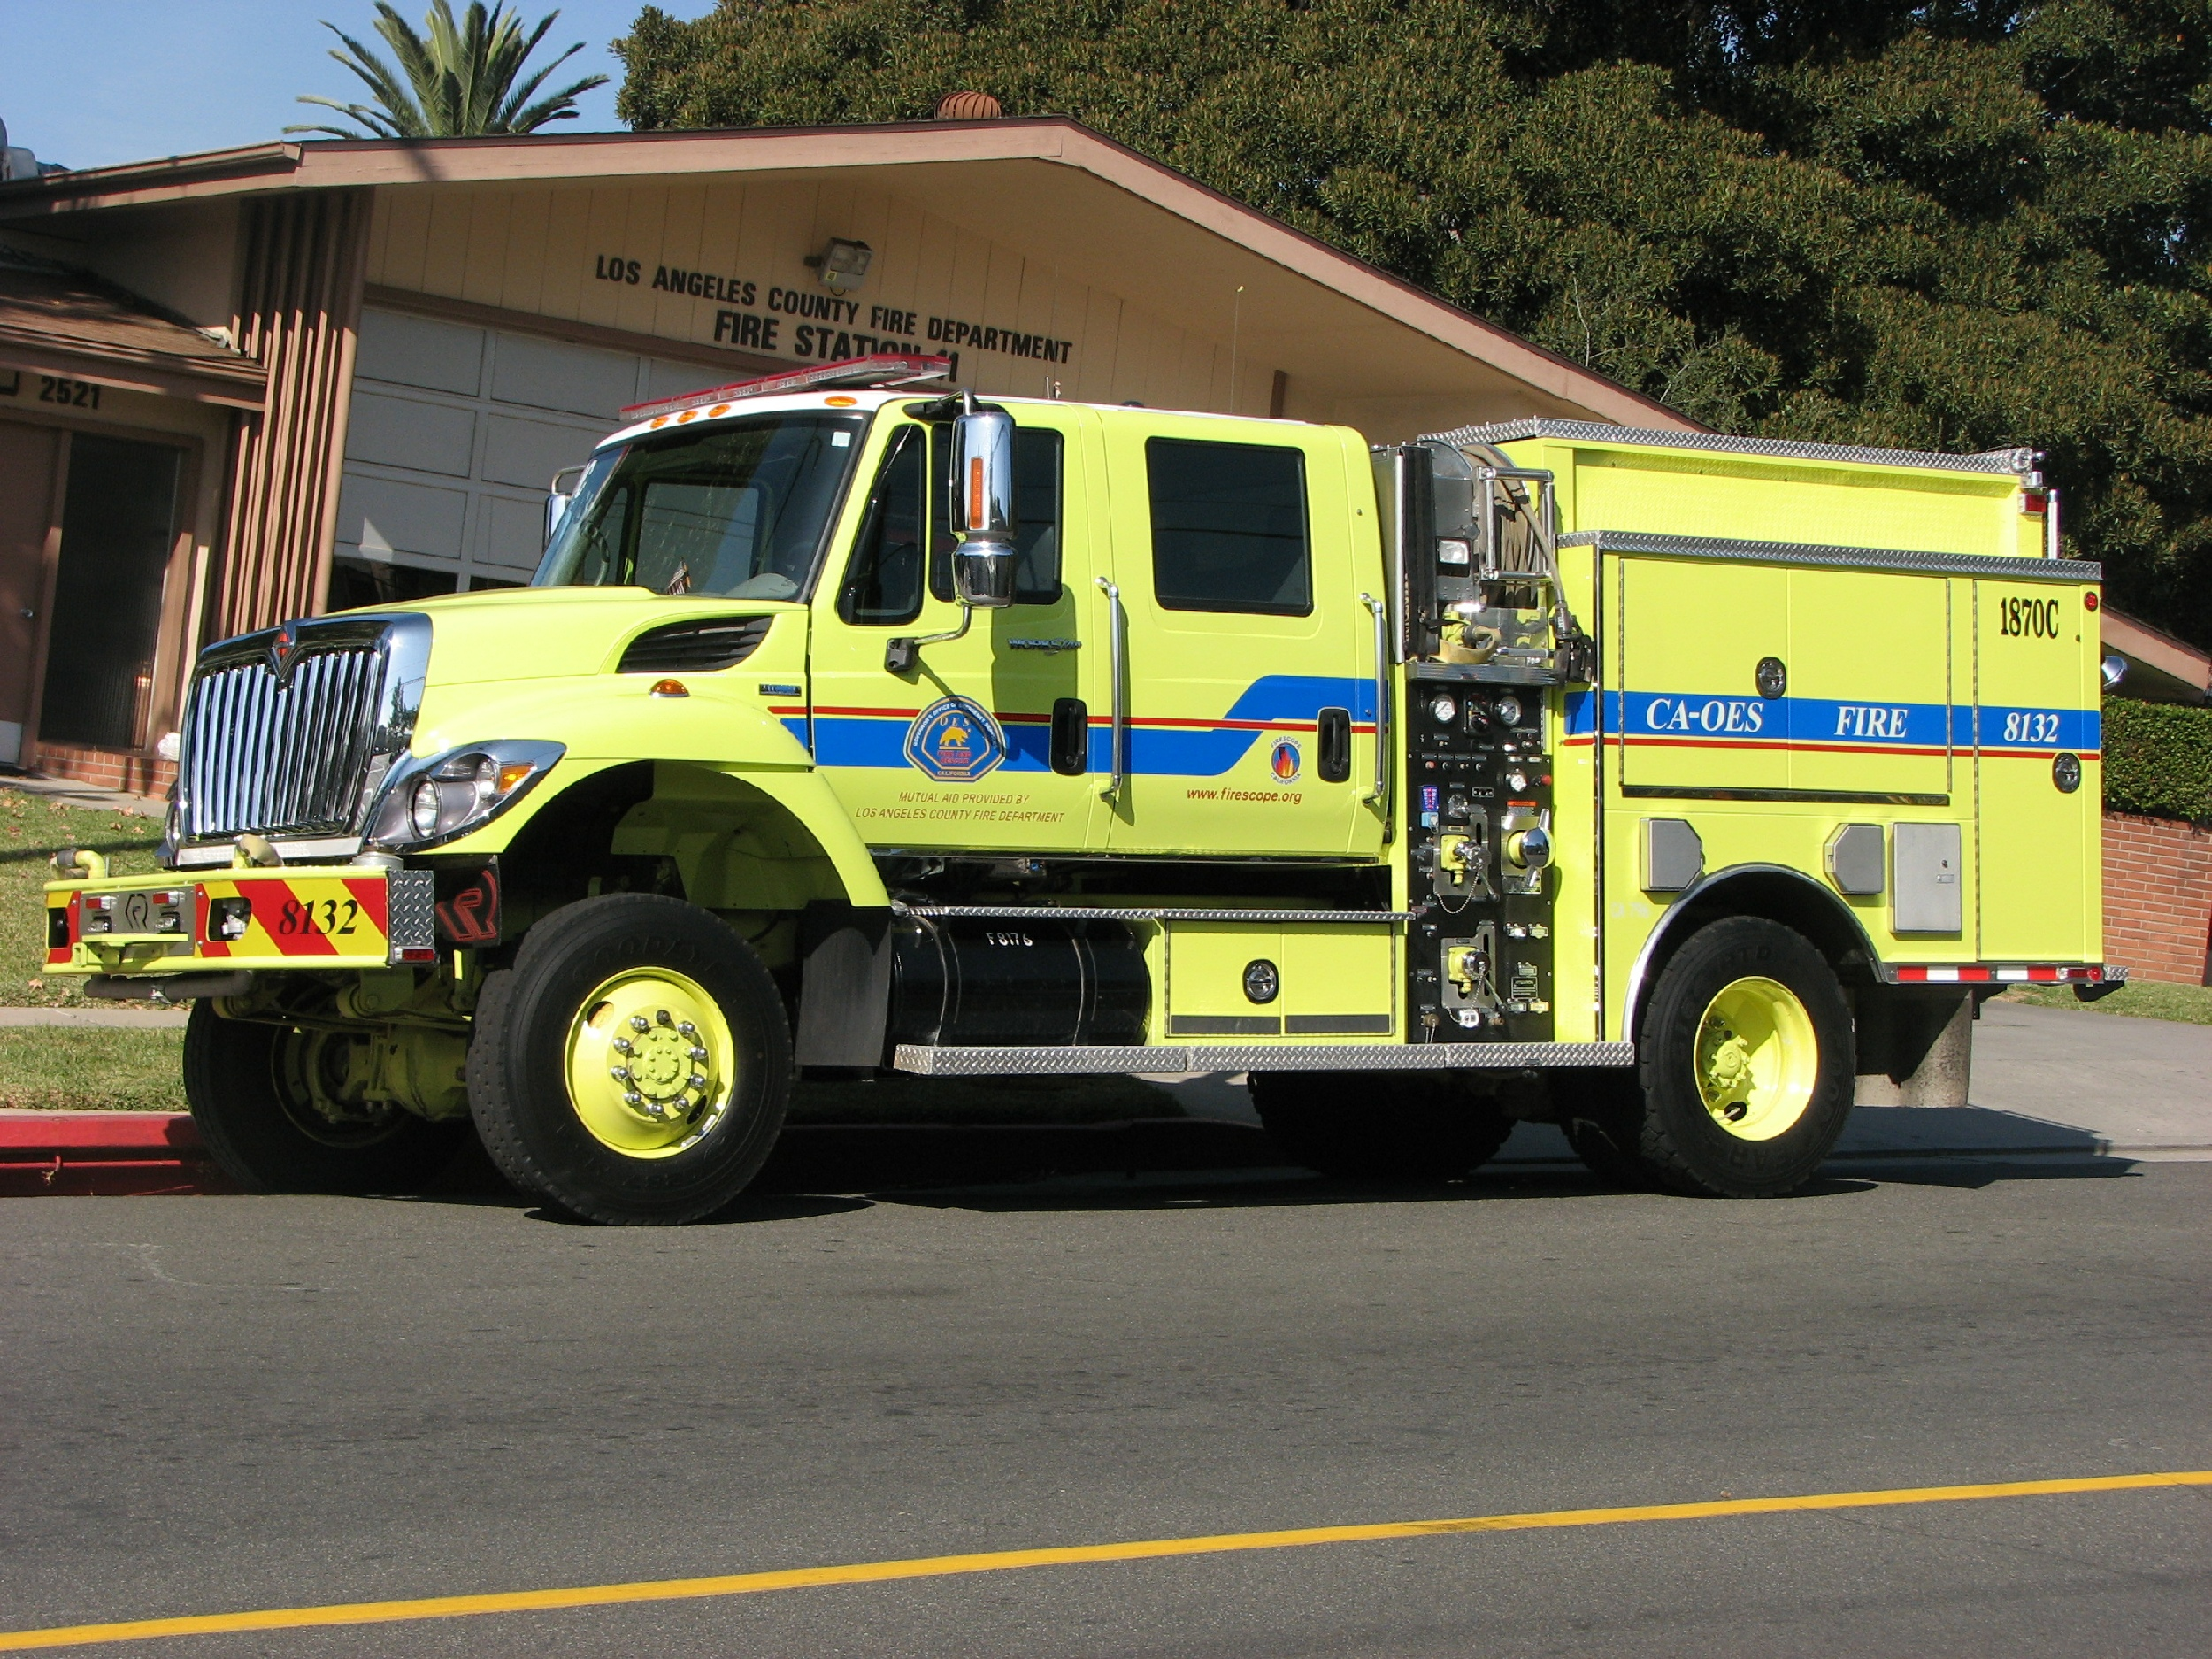 California Oes Fire Engines For Sale